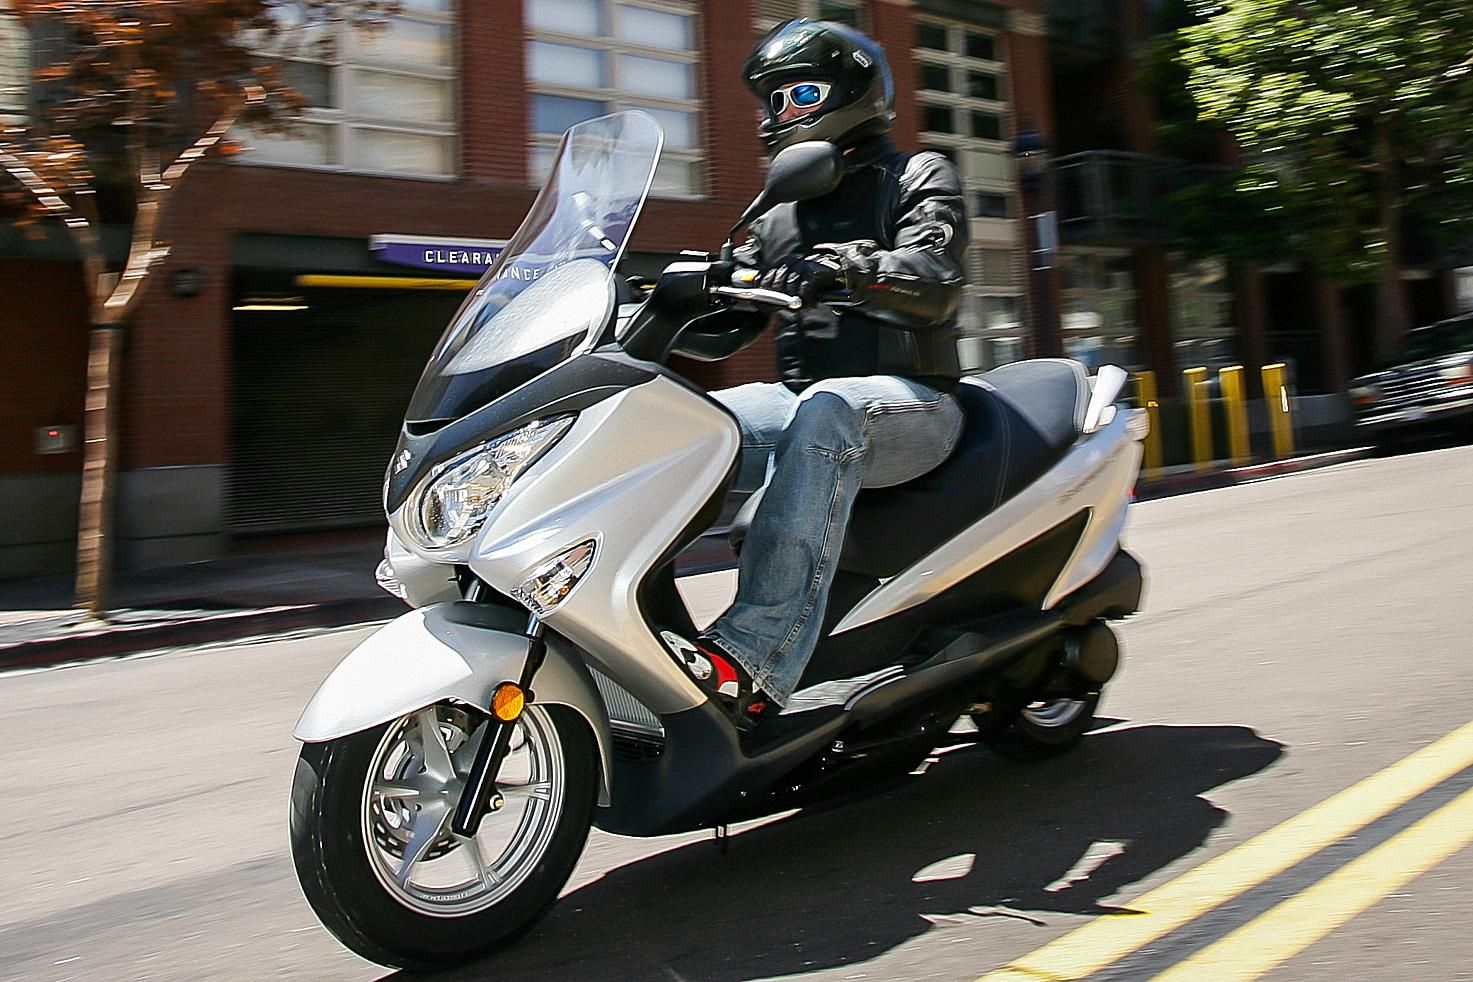 suzuki burgman 250 scooter review